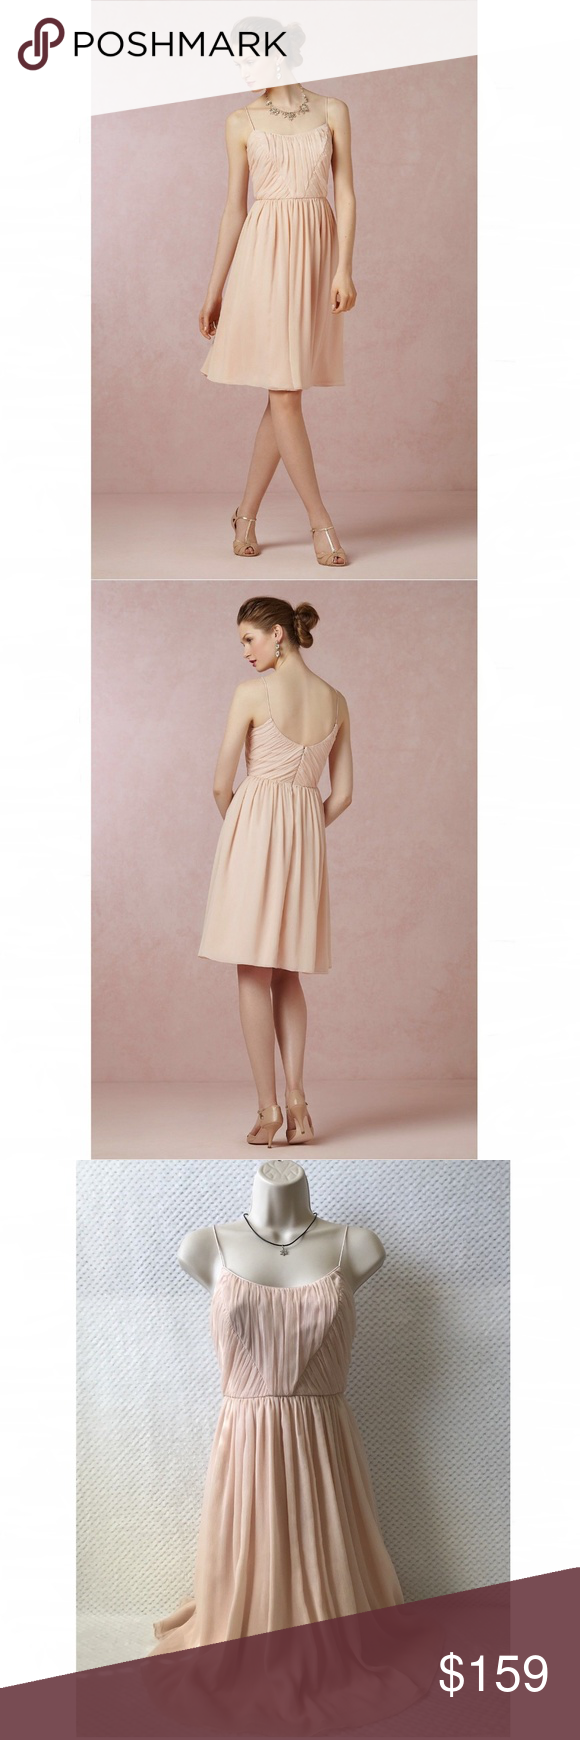 84f3c82ea0c0e BHLDN Hitherto Giselle Blush Pink Dress Size 2 You are purchasing an  Anthropologie Brand Hitherto BHLDN